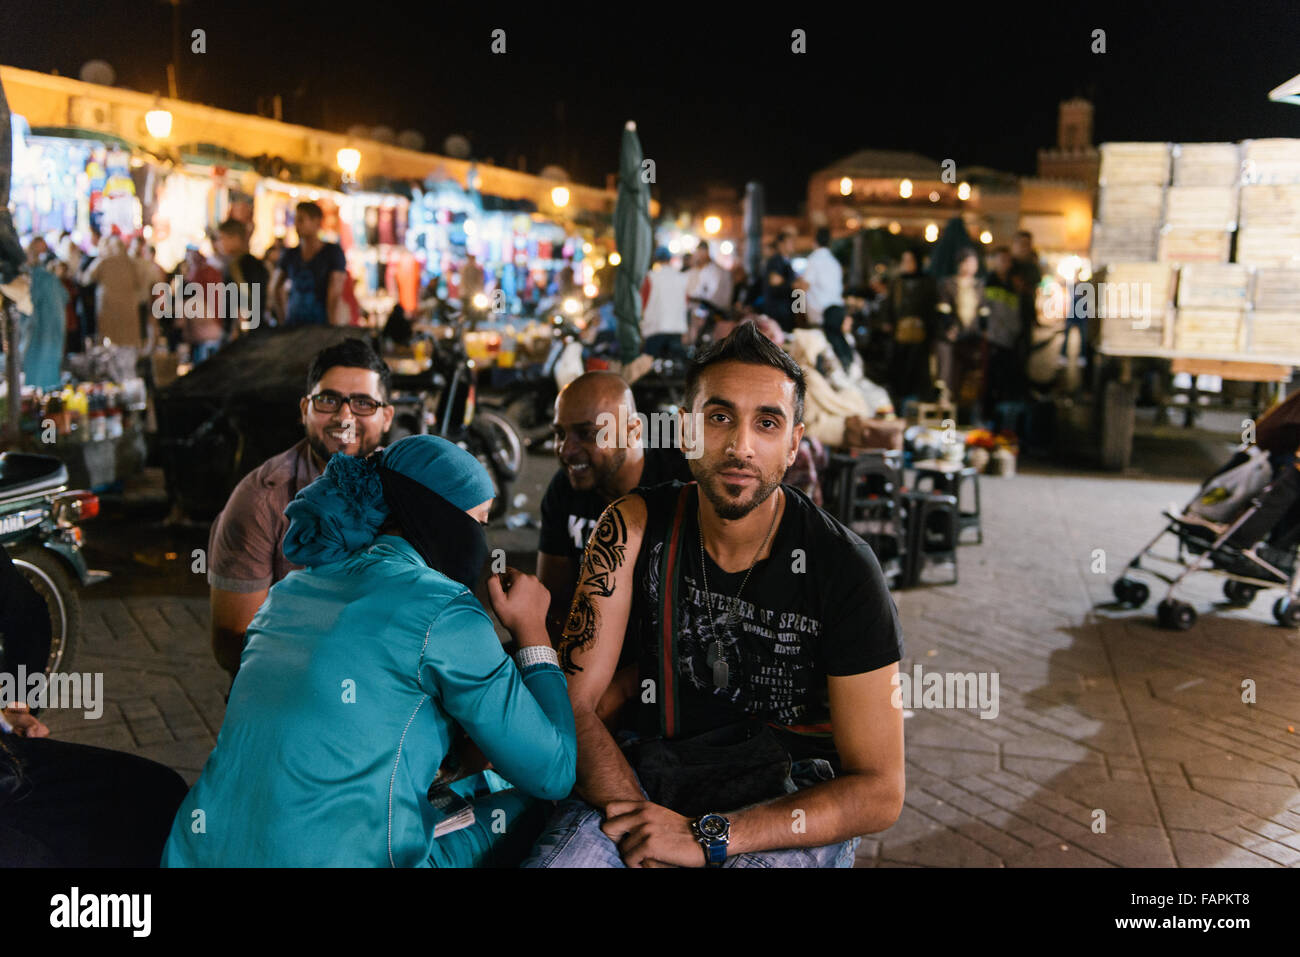 Tourist getting henna tattoo on forearm in Jemaa el Fnaa Square in Marrakech at night - Stock Image